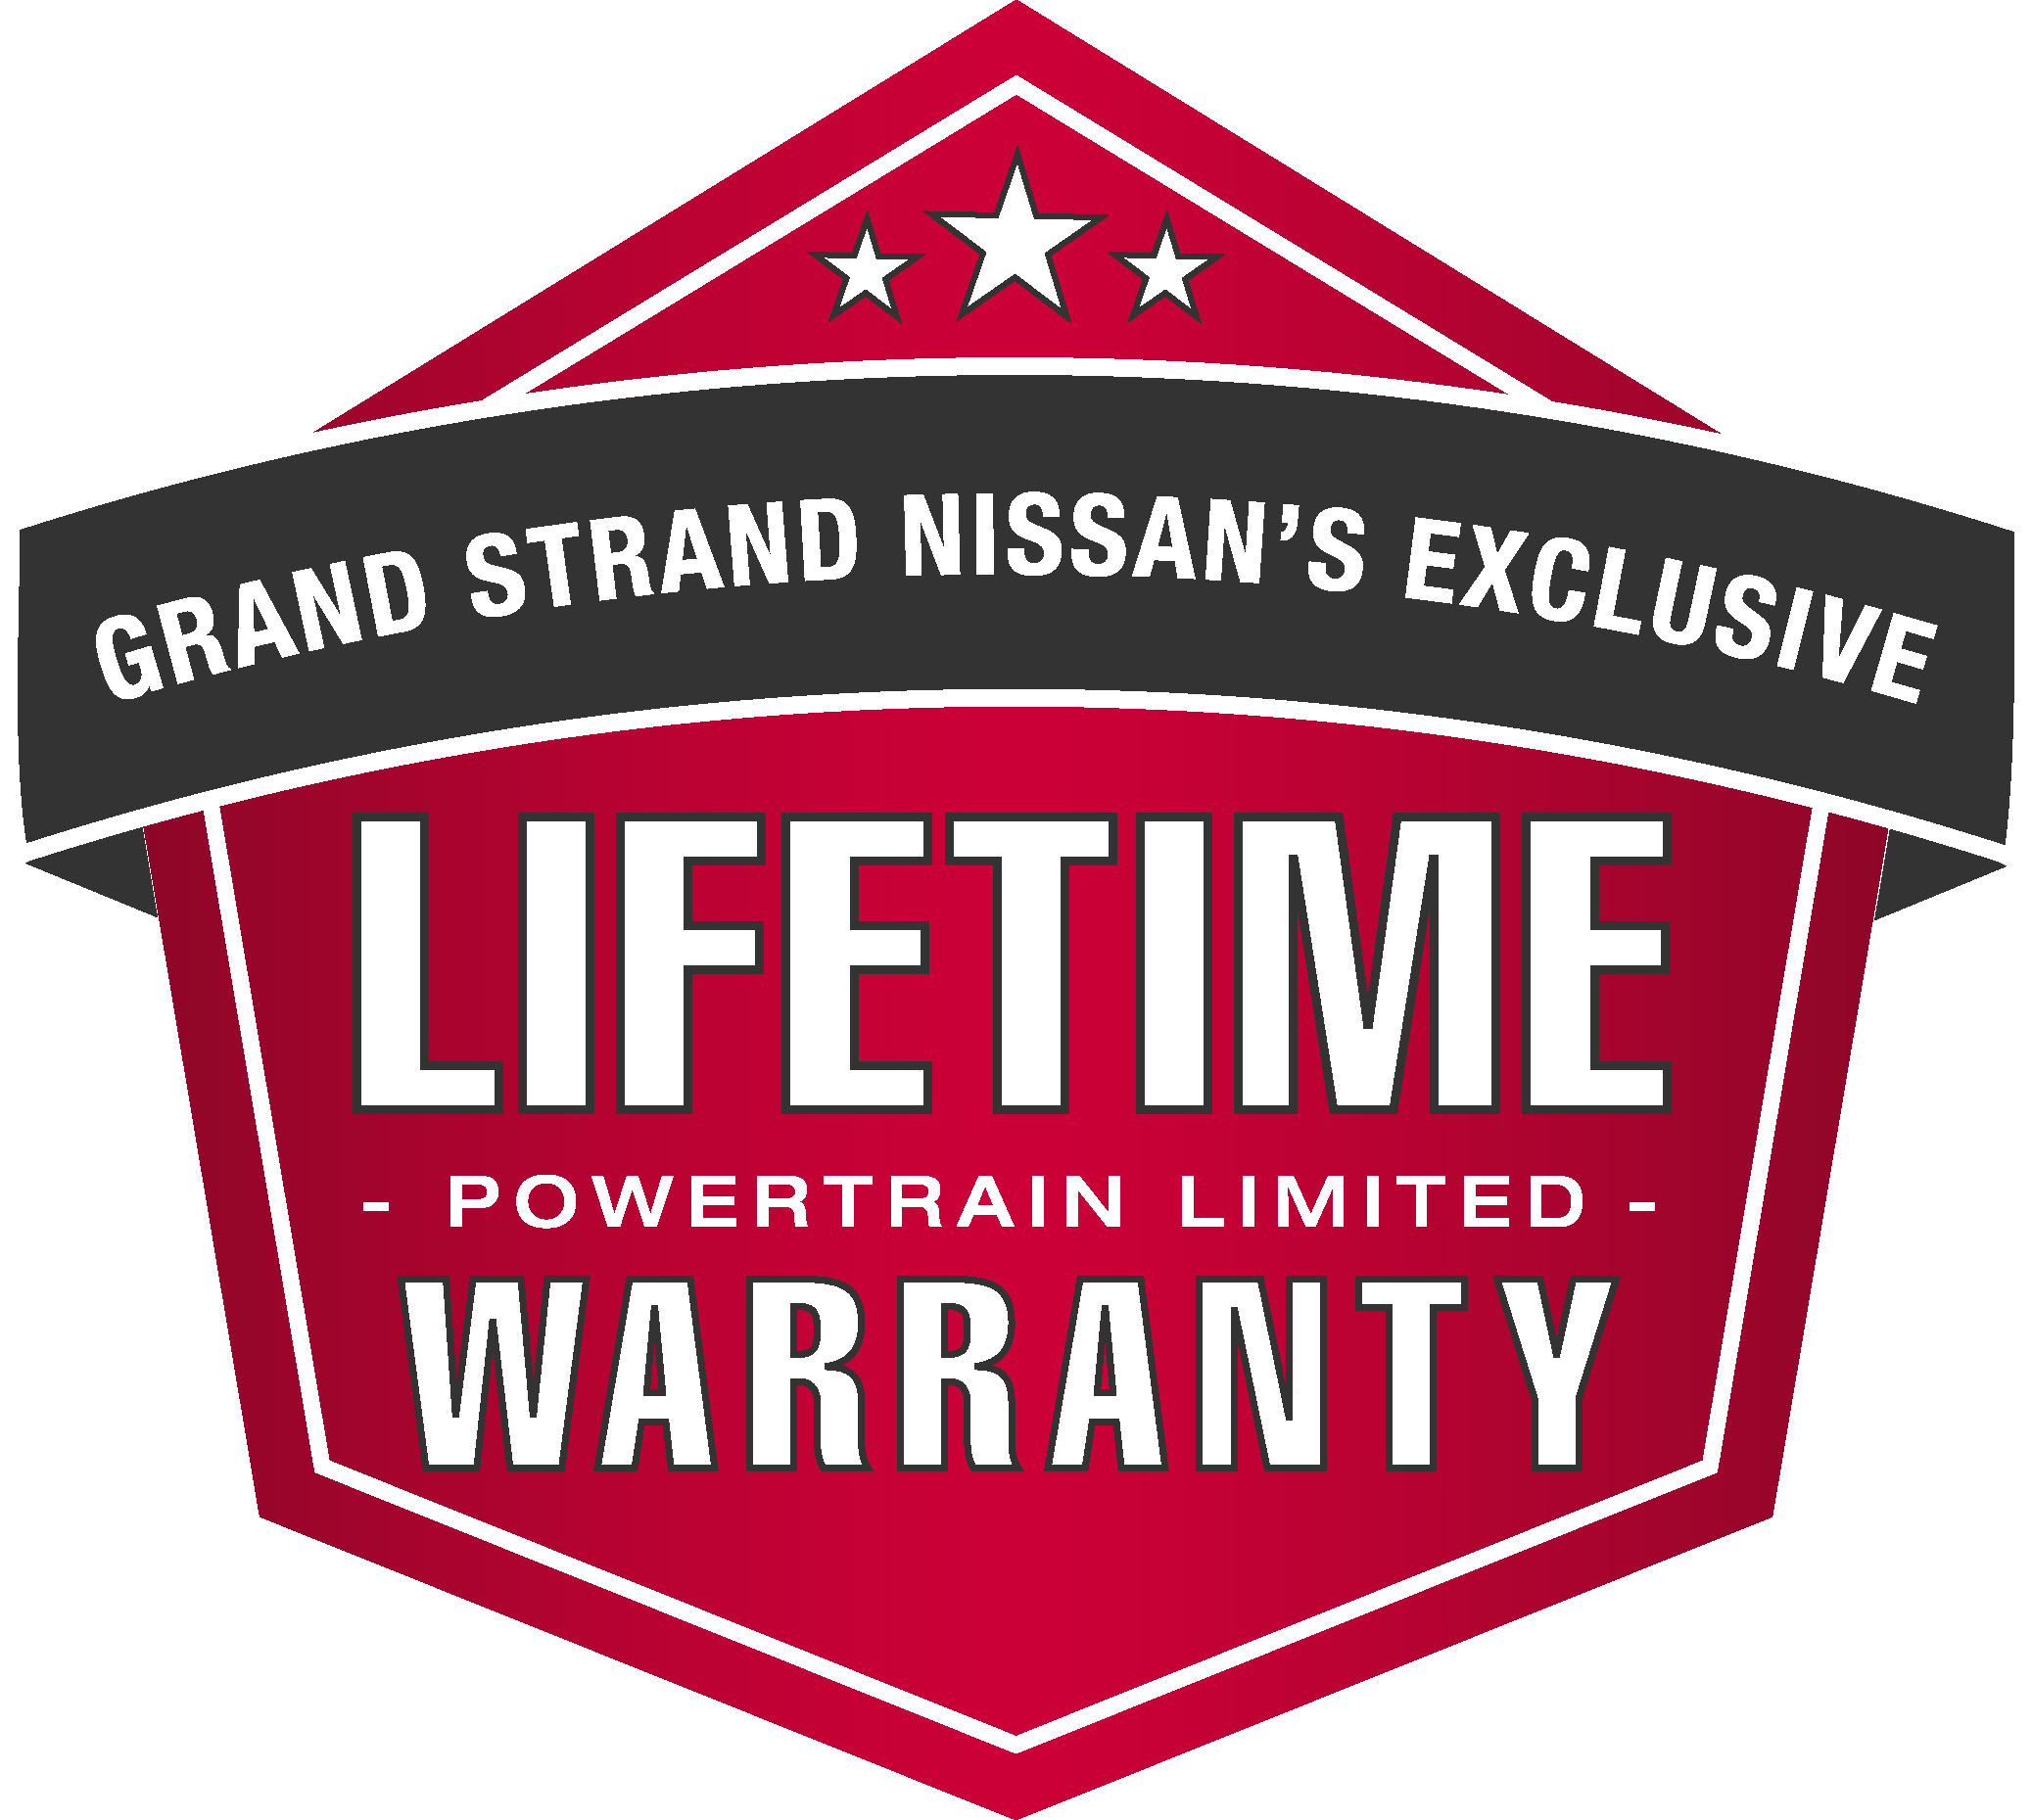 Lifetime Warranty is now complimentary on all new Nissan vehicles and select pre-owned vehicles sold at Grand Strand Nissan. Shop 24/7 at www.grandstrandnissan.com